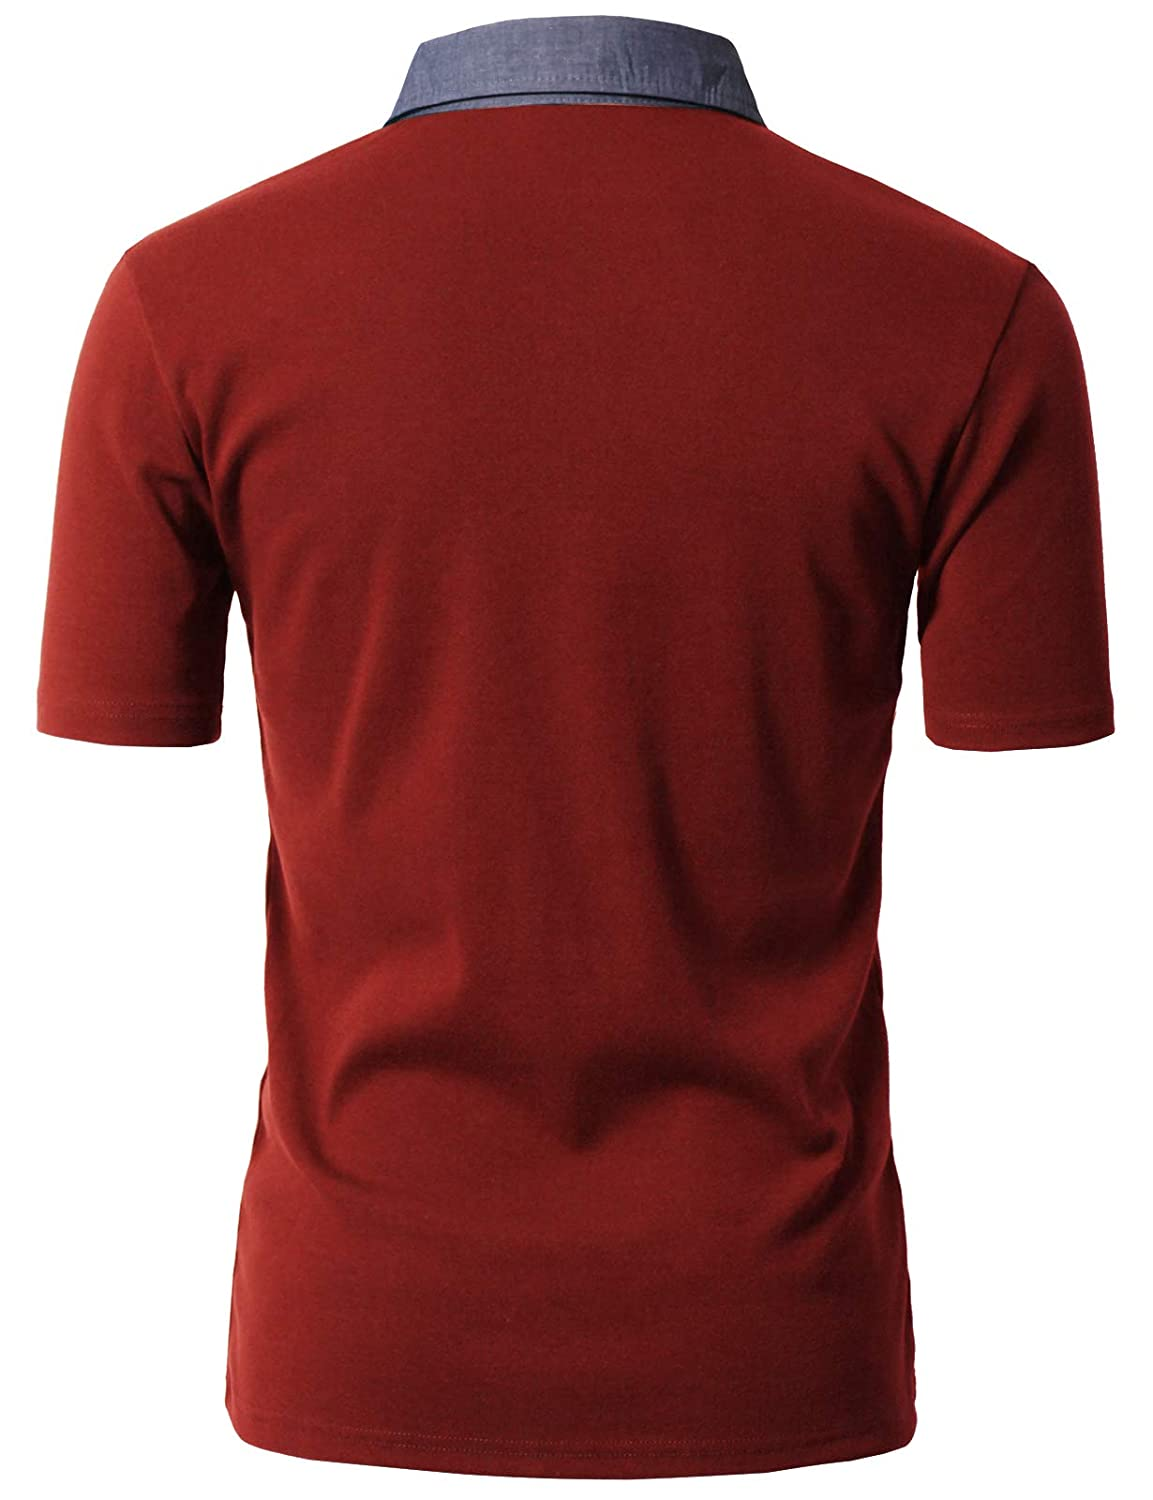 H2H Mens Casual Slim Fit Short Sleeve Polo T-Shirts Various Styles